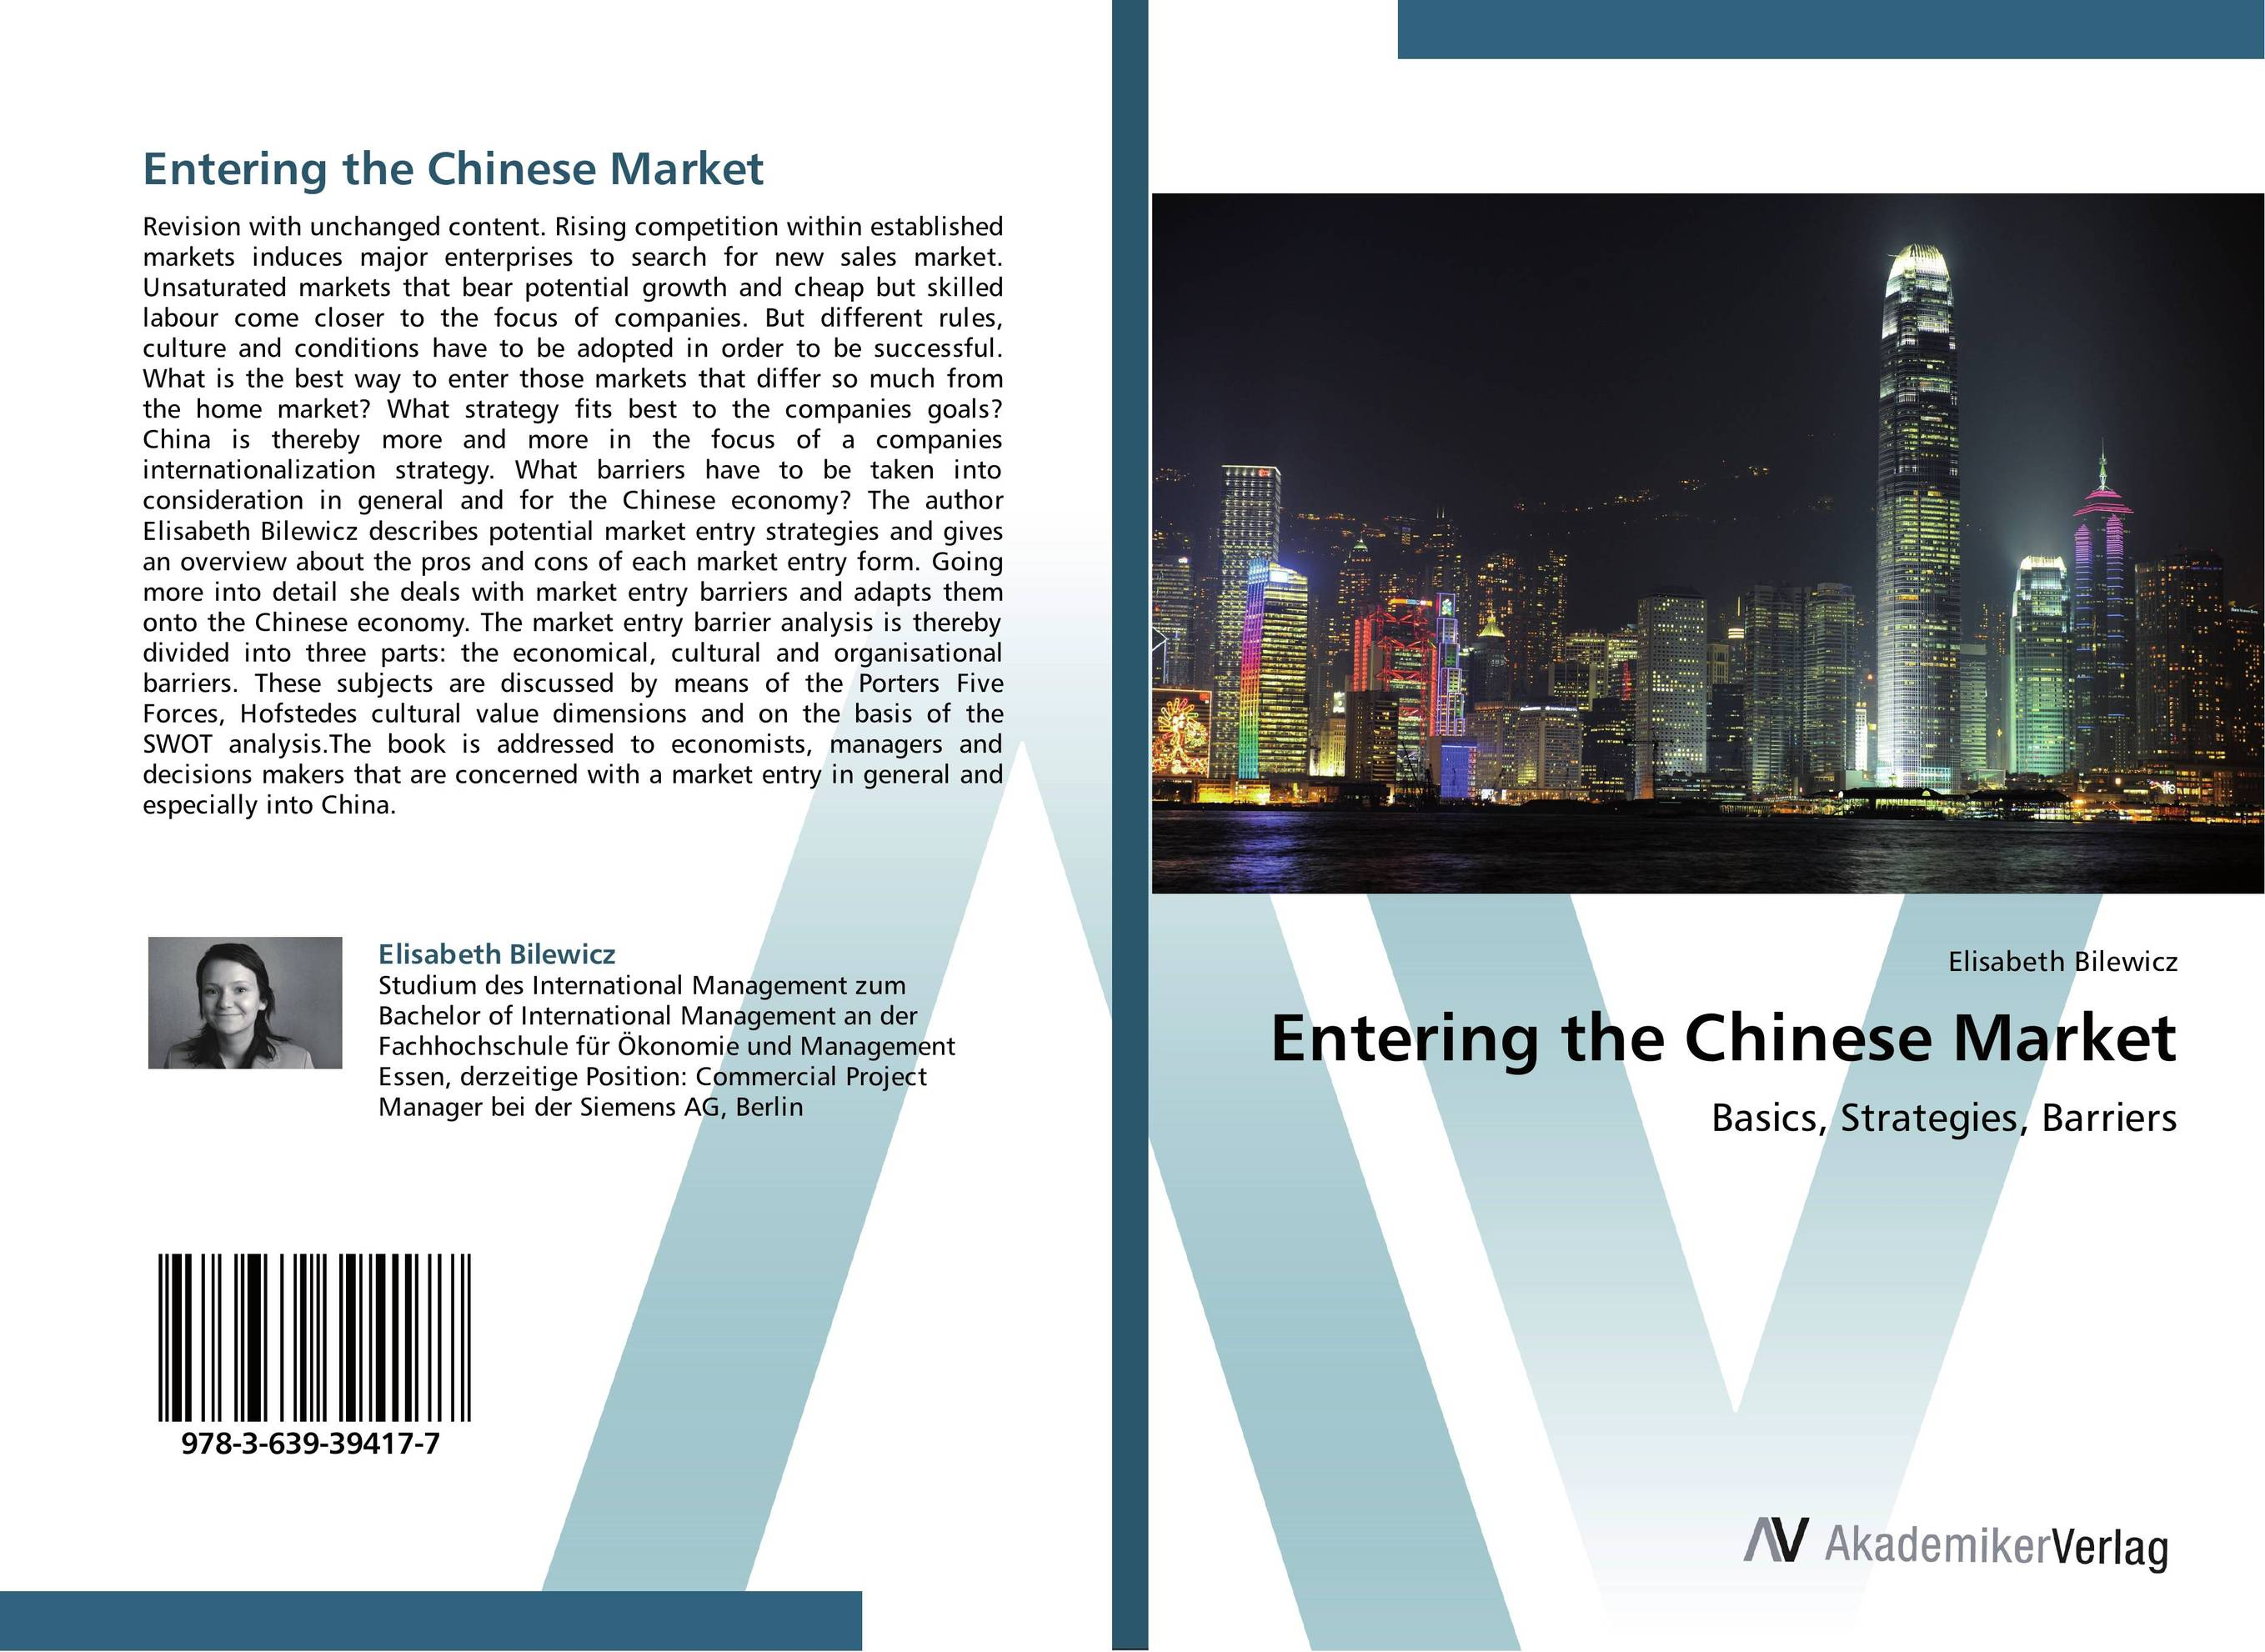 Entering the Chinese Market